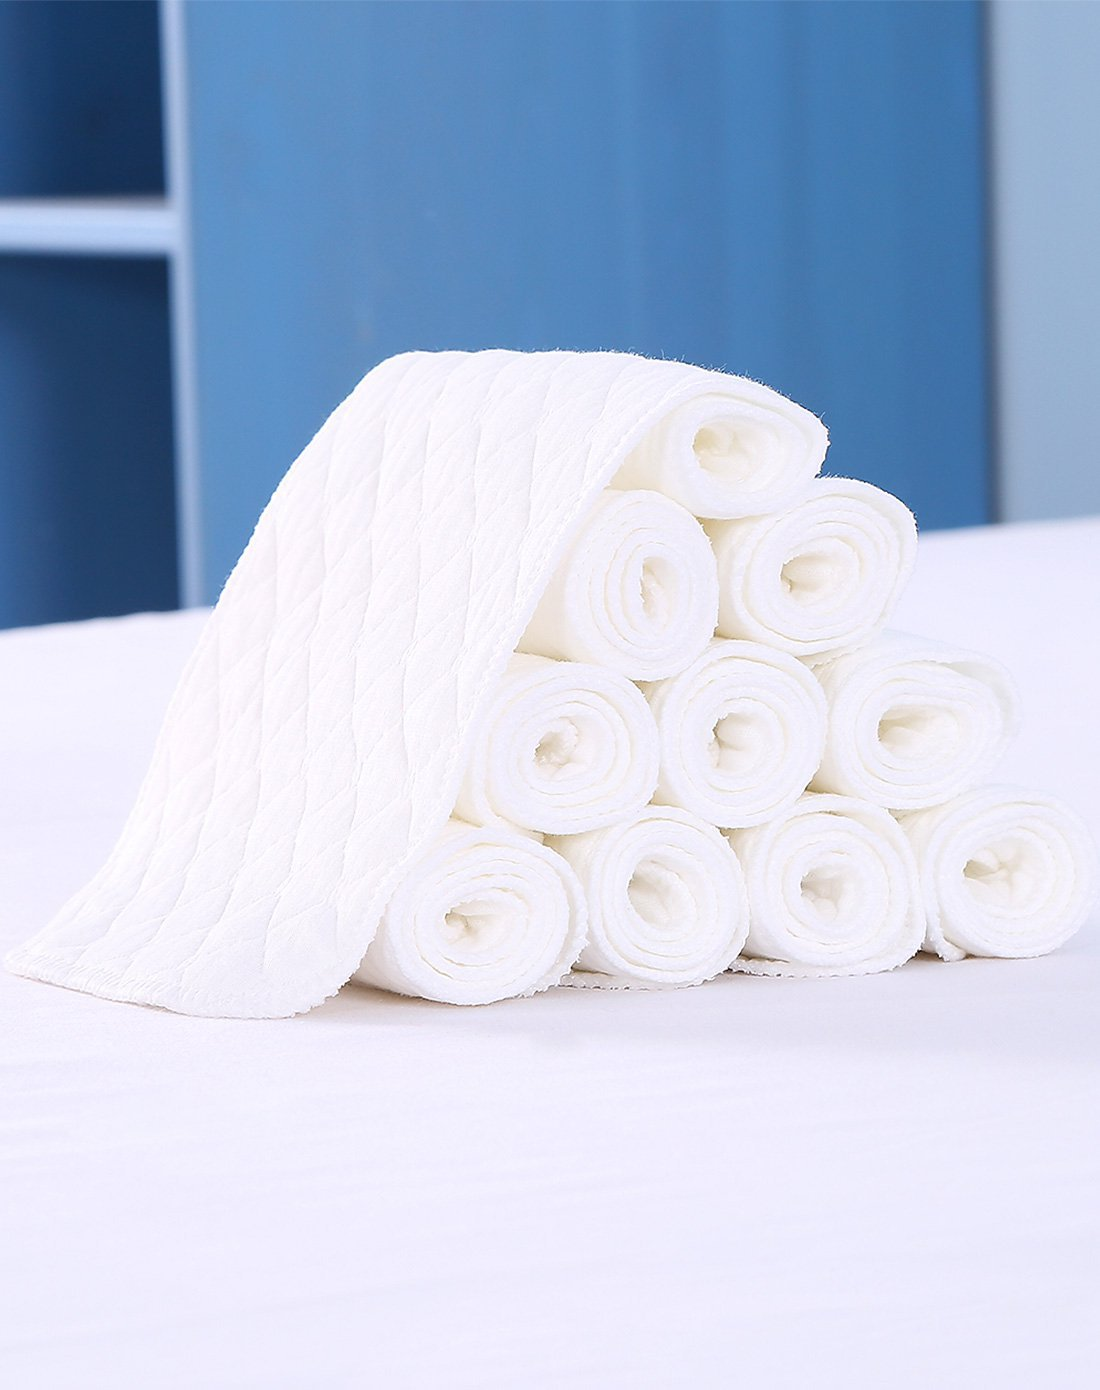 100% For Baby 46*17cm Baby Diaper Baby Nappies Baby Infant Newborn Cloth Diaper Nappy Liners Insert 3 Layers Cotton Hot Sale